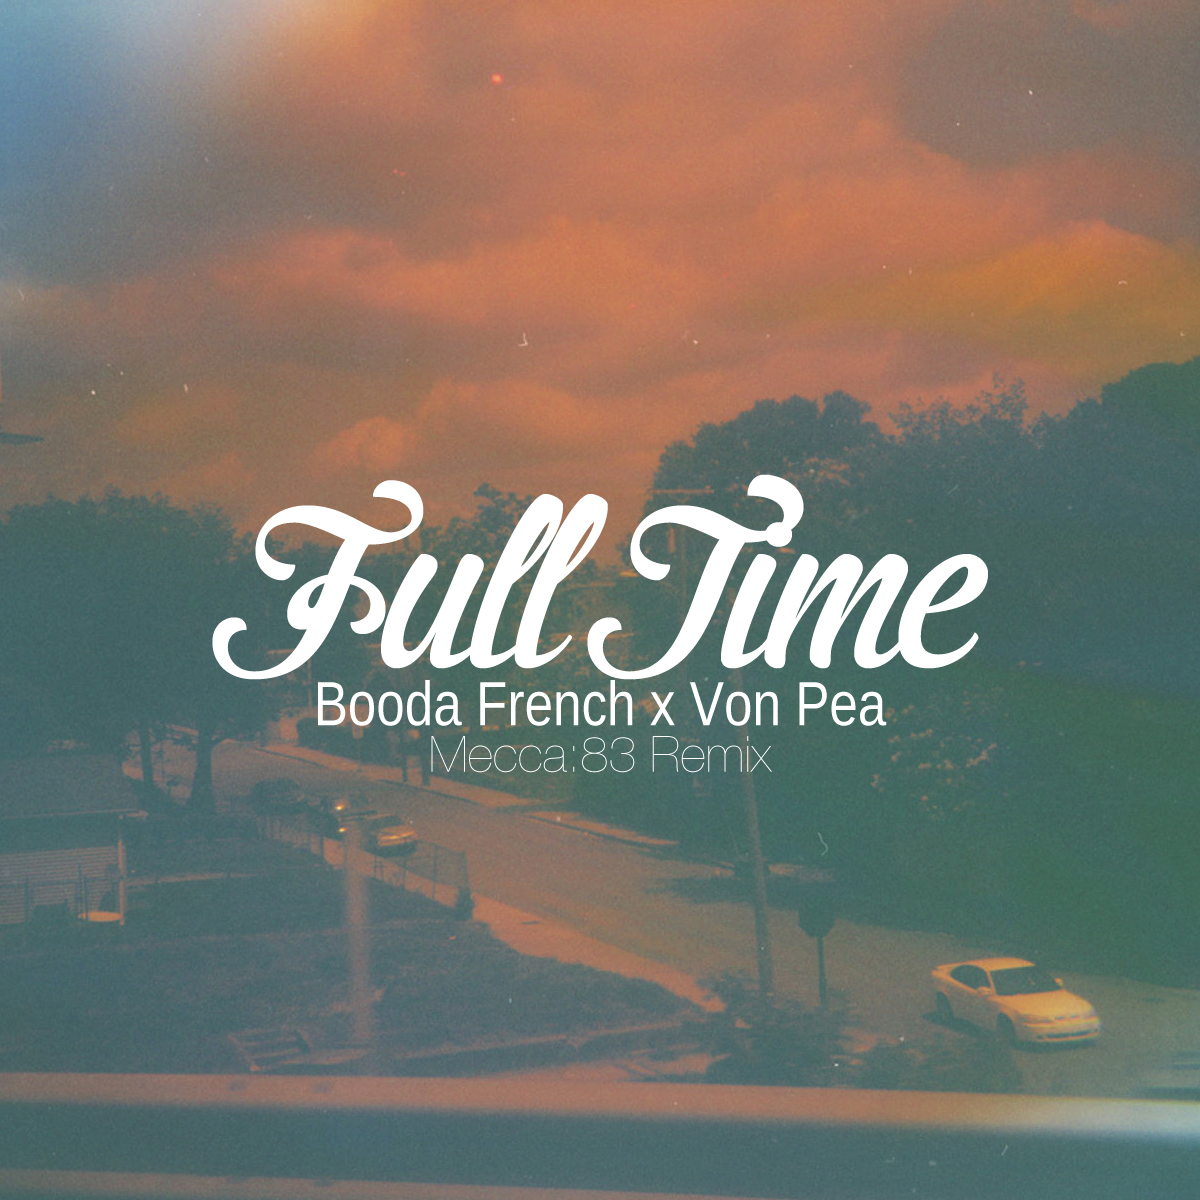 Free MP3: Booda French – Full Time ft. Von Pea (Mecca:83 Remix)